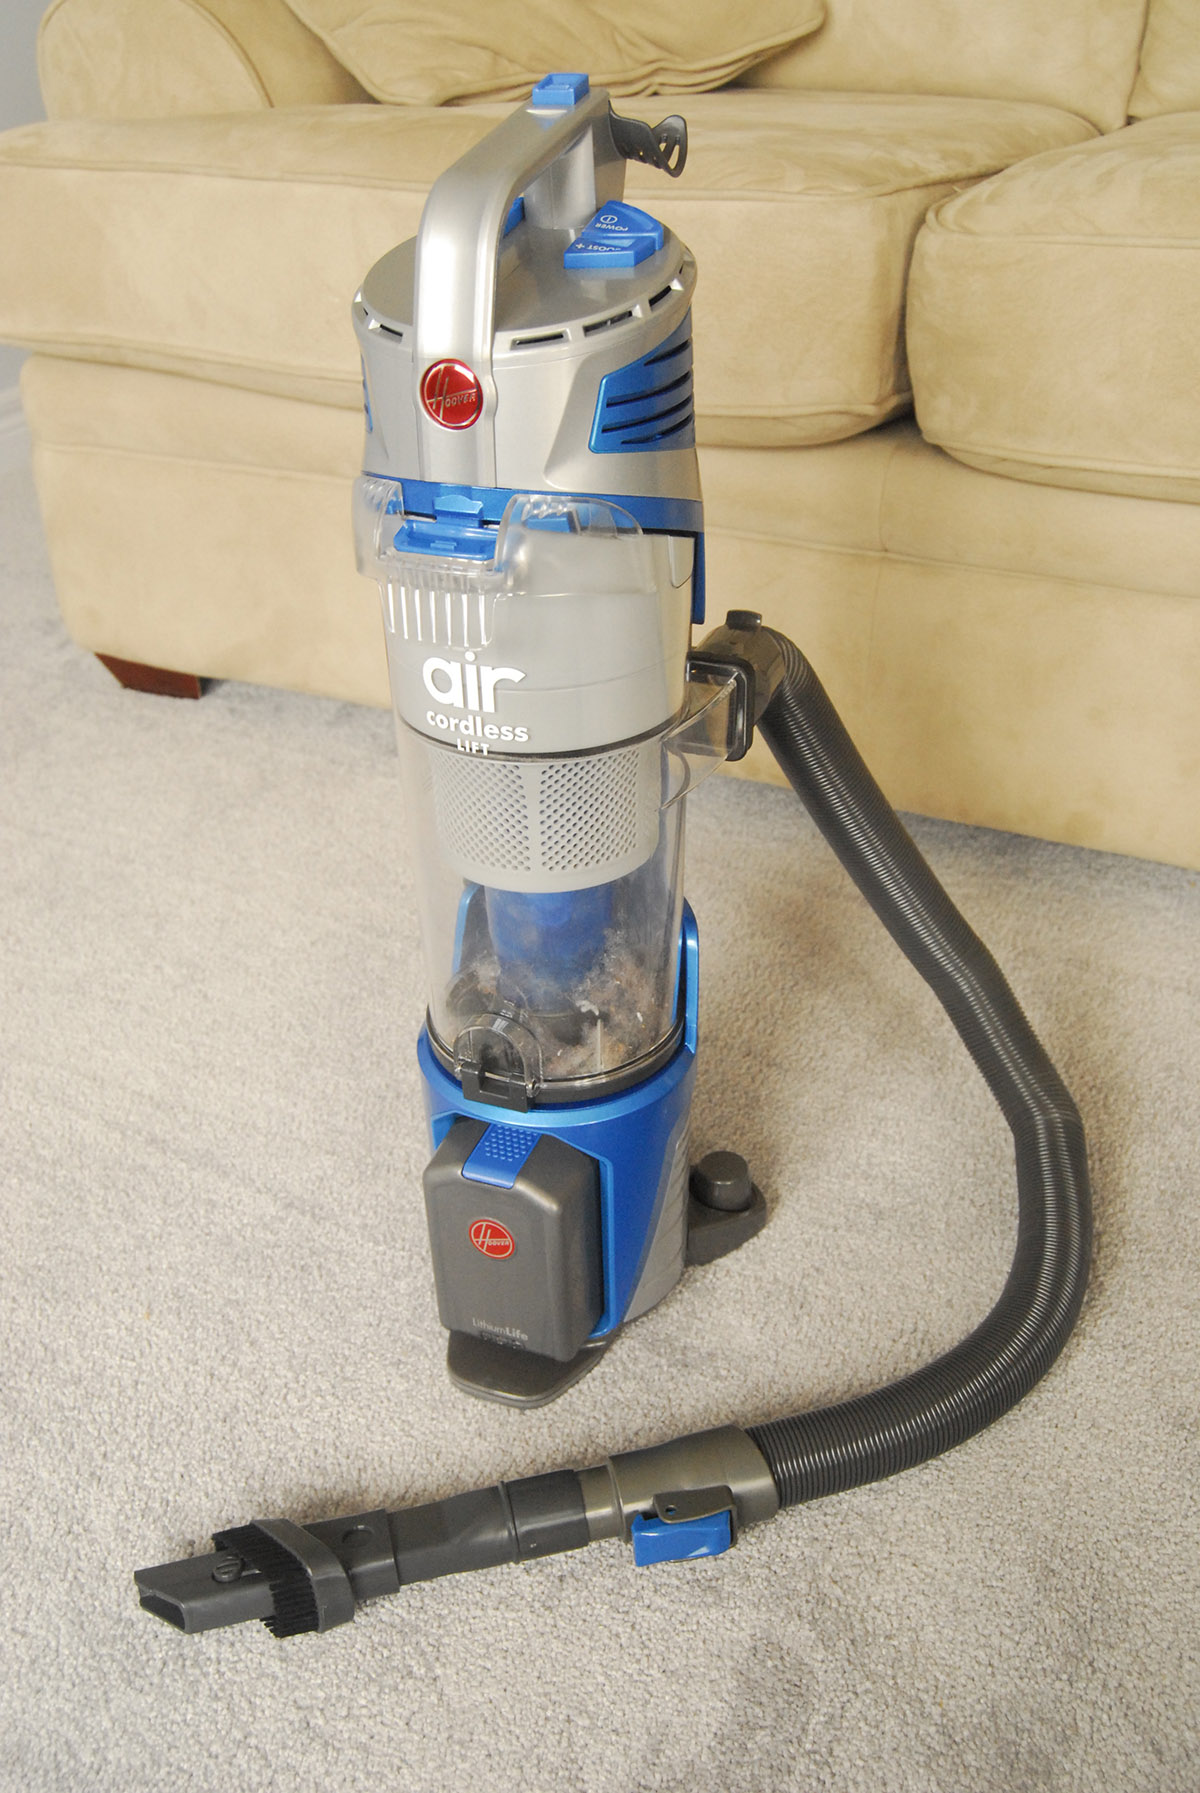 hoover air cordless lift canister